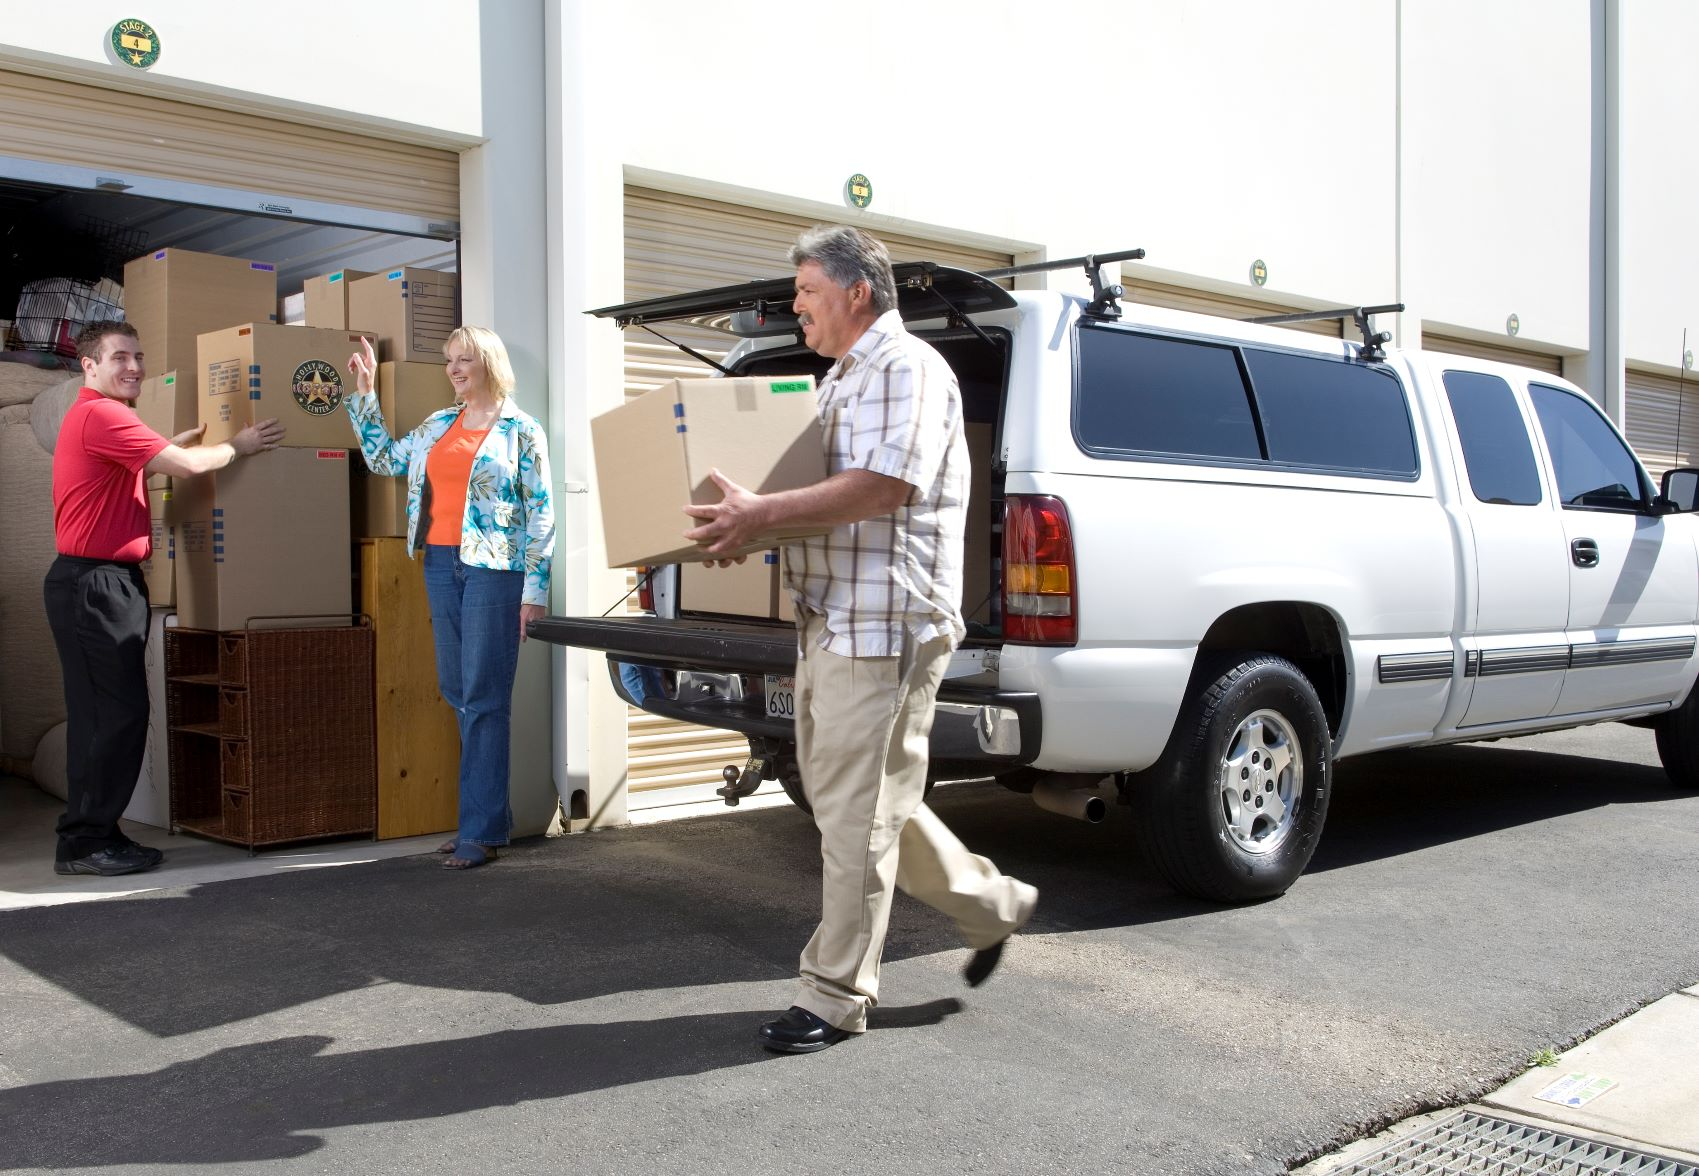 Guests at Hollywood Storage Center